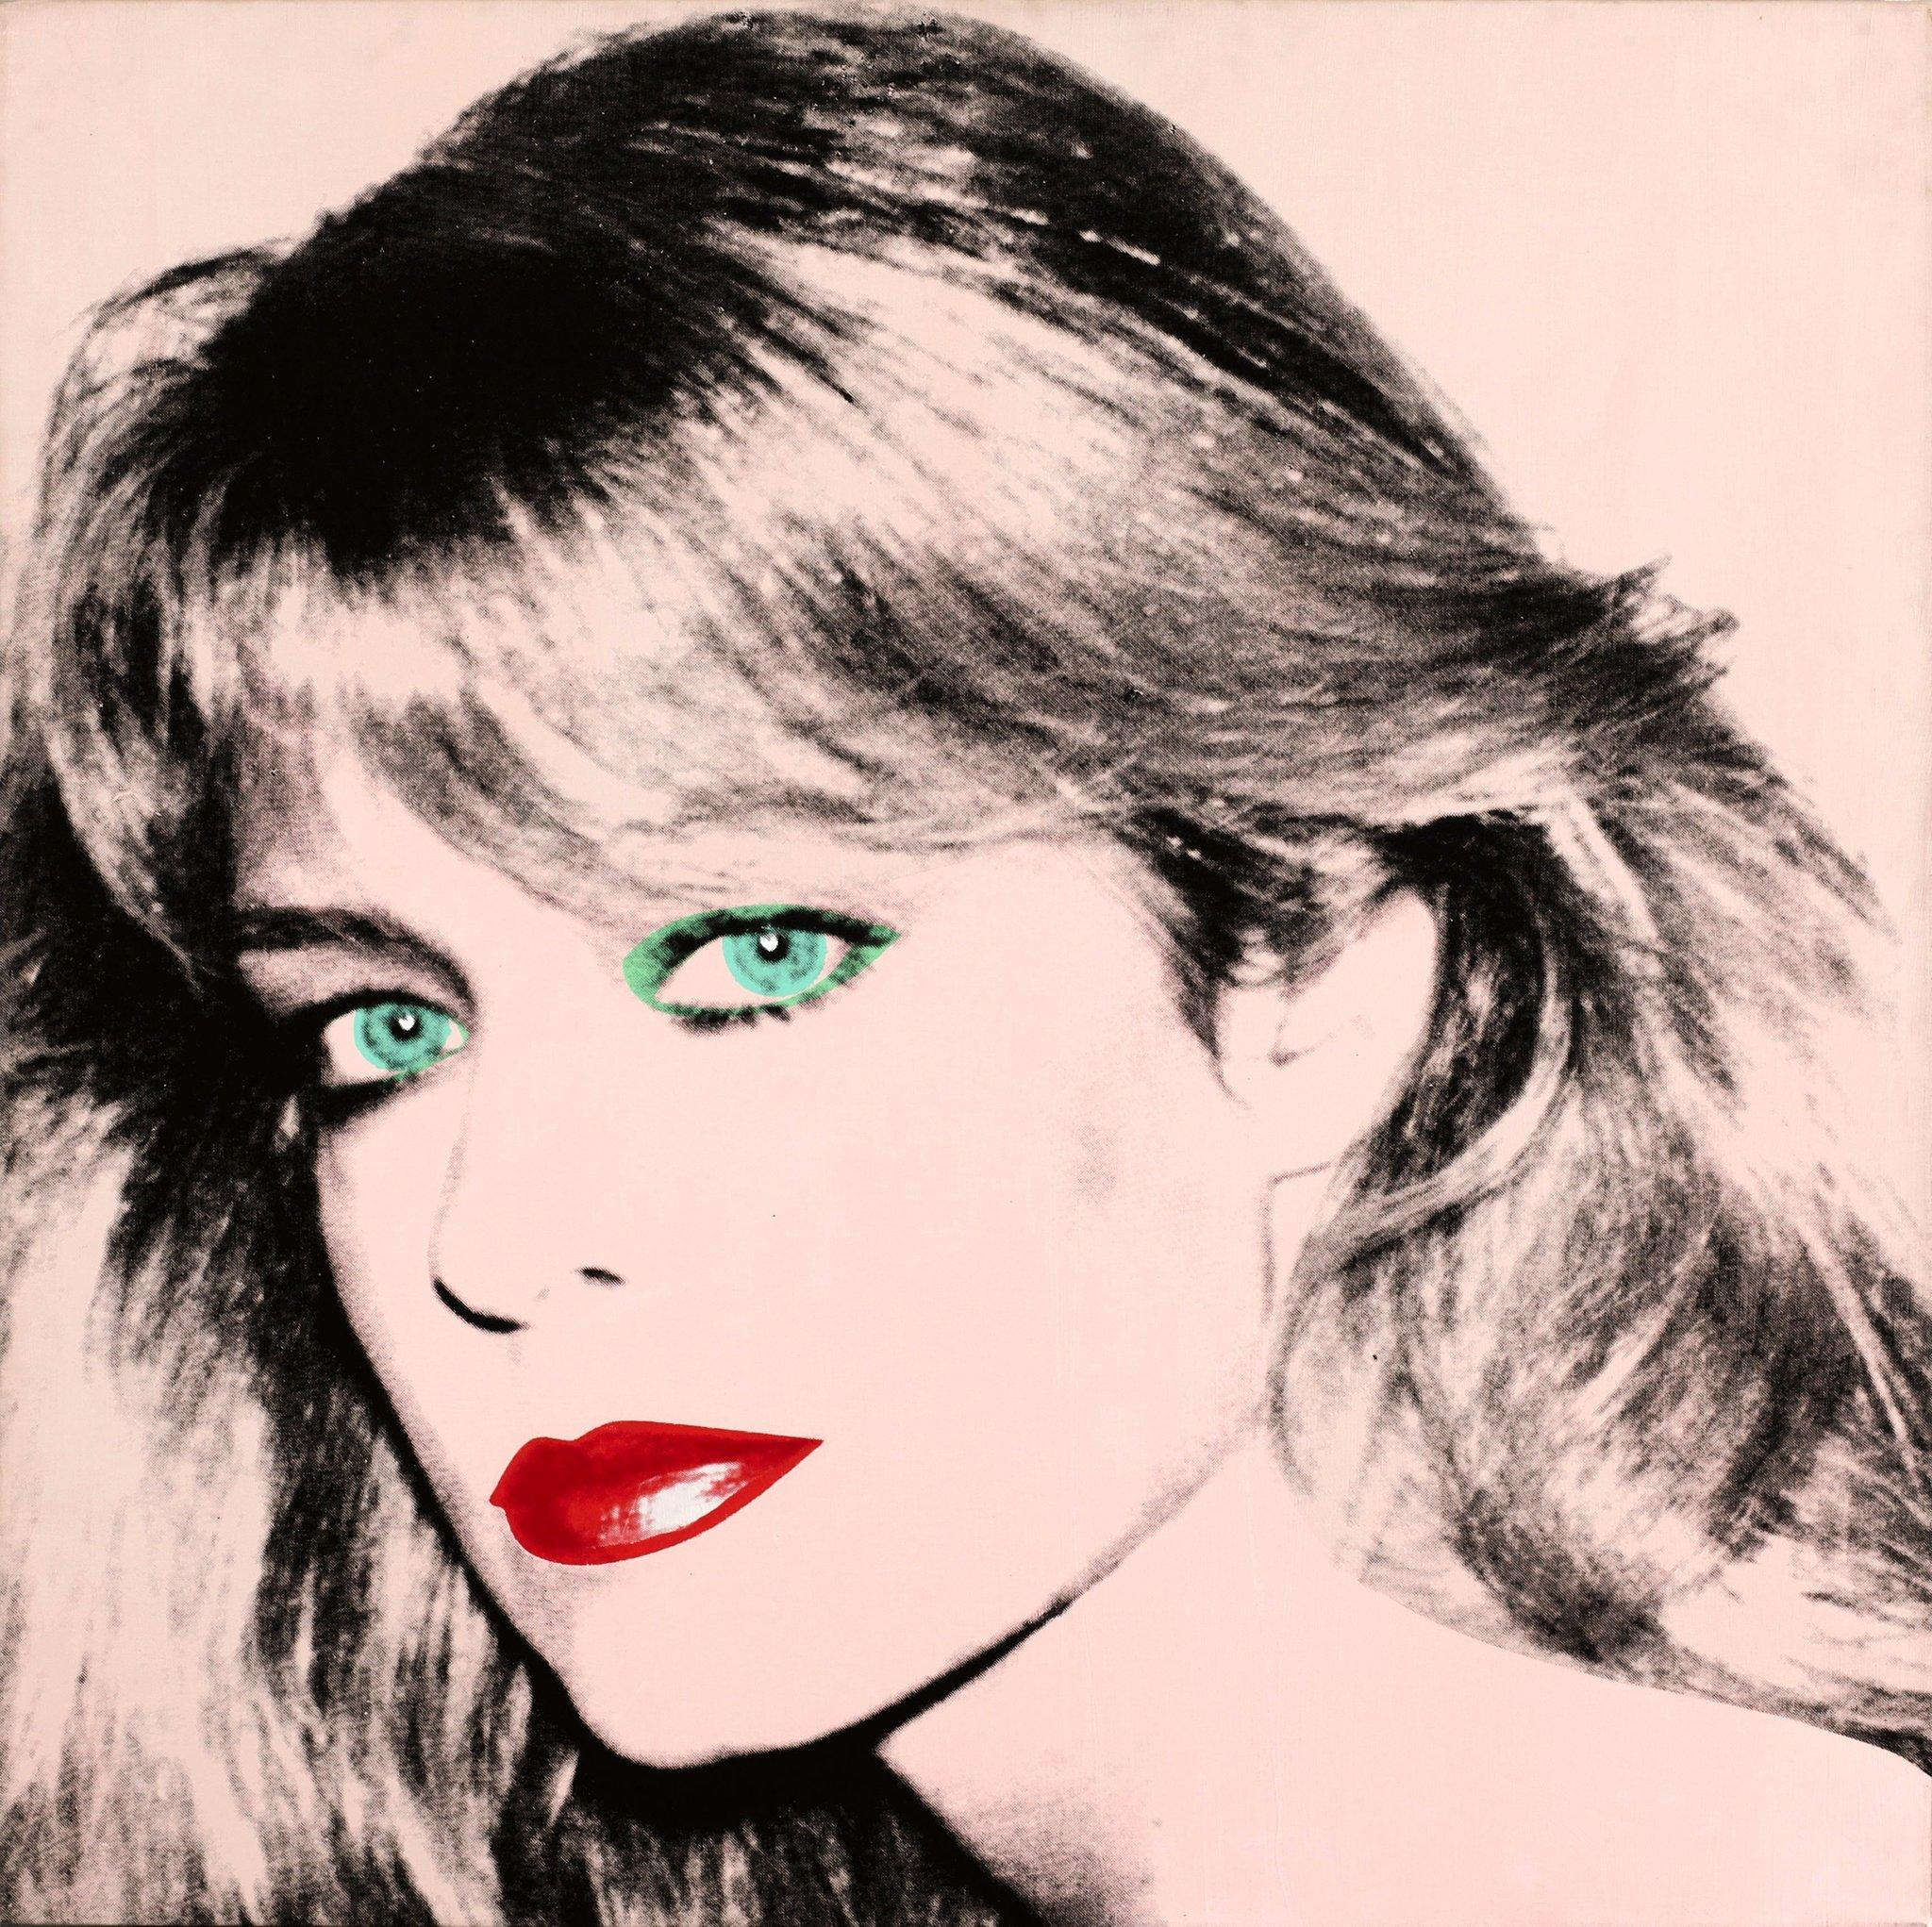 Portrait of Farrah Fawcett by Andy Warhol.